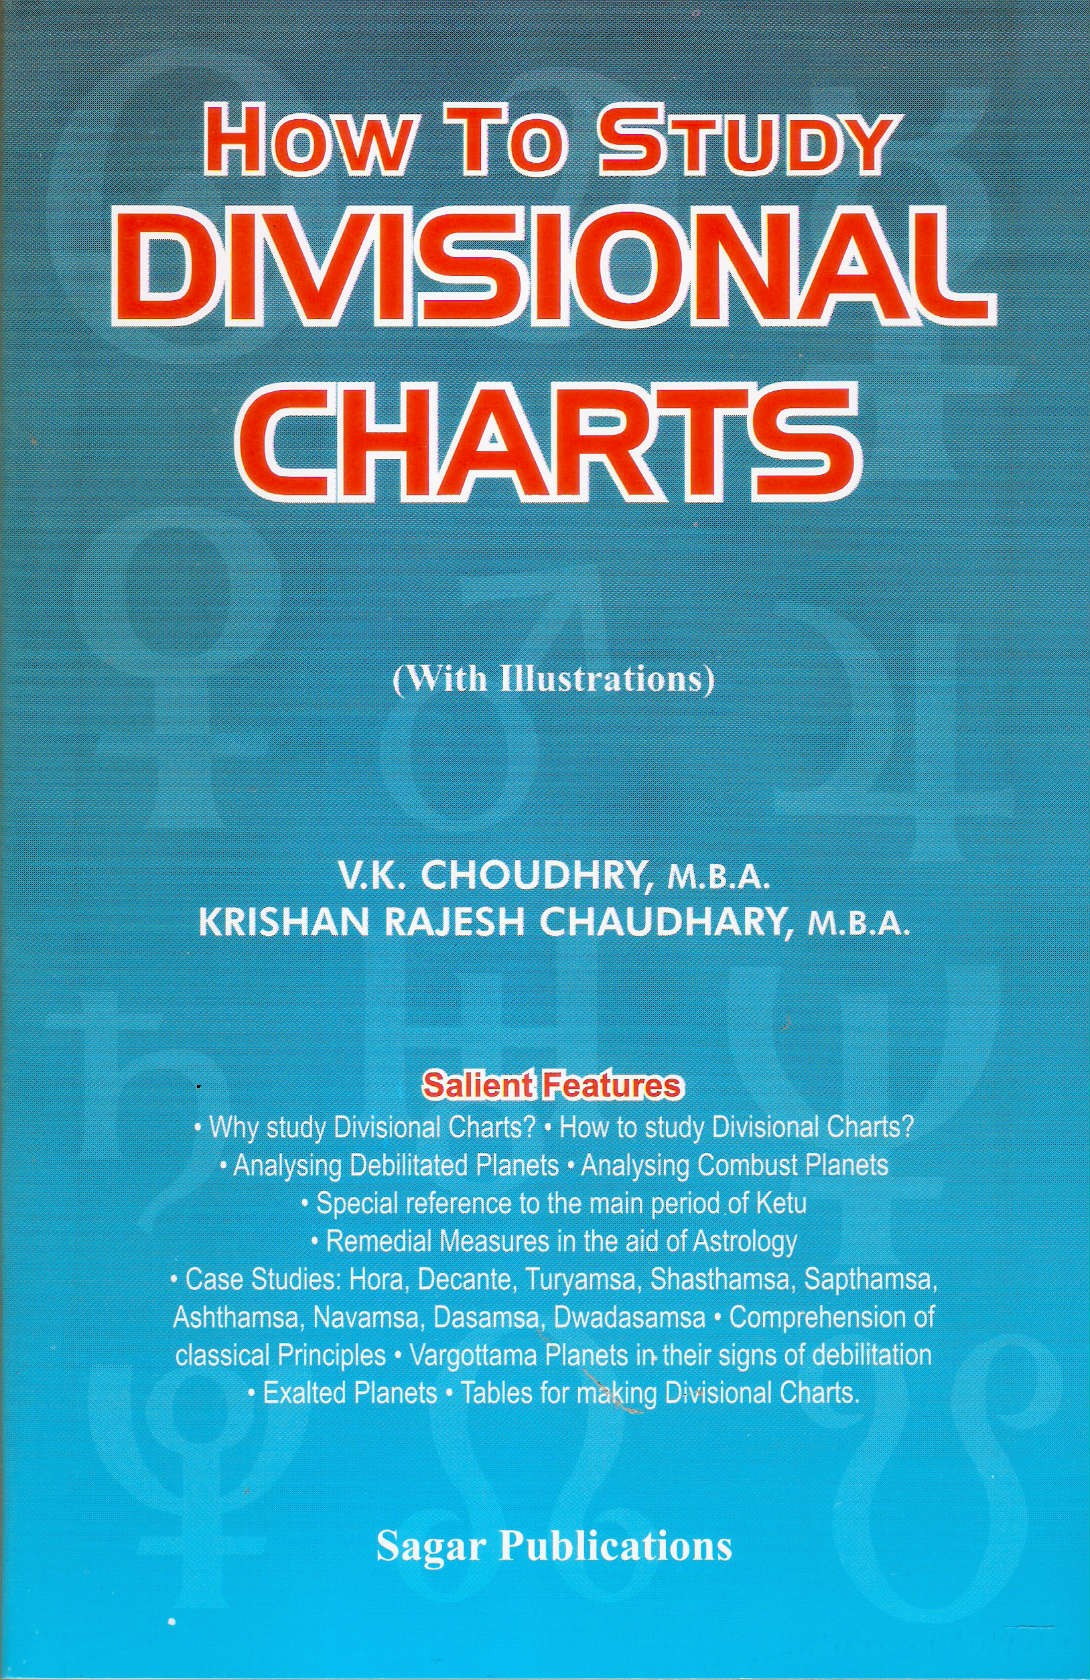 How to Study Divisional Charts How to Study Divisional Charts | Buy